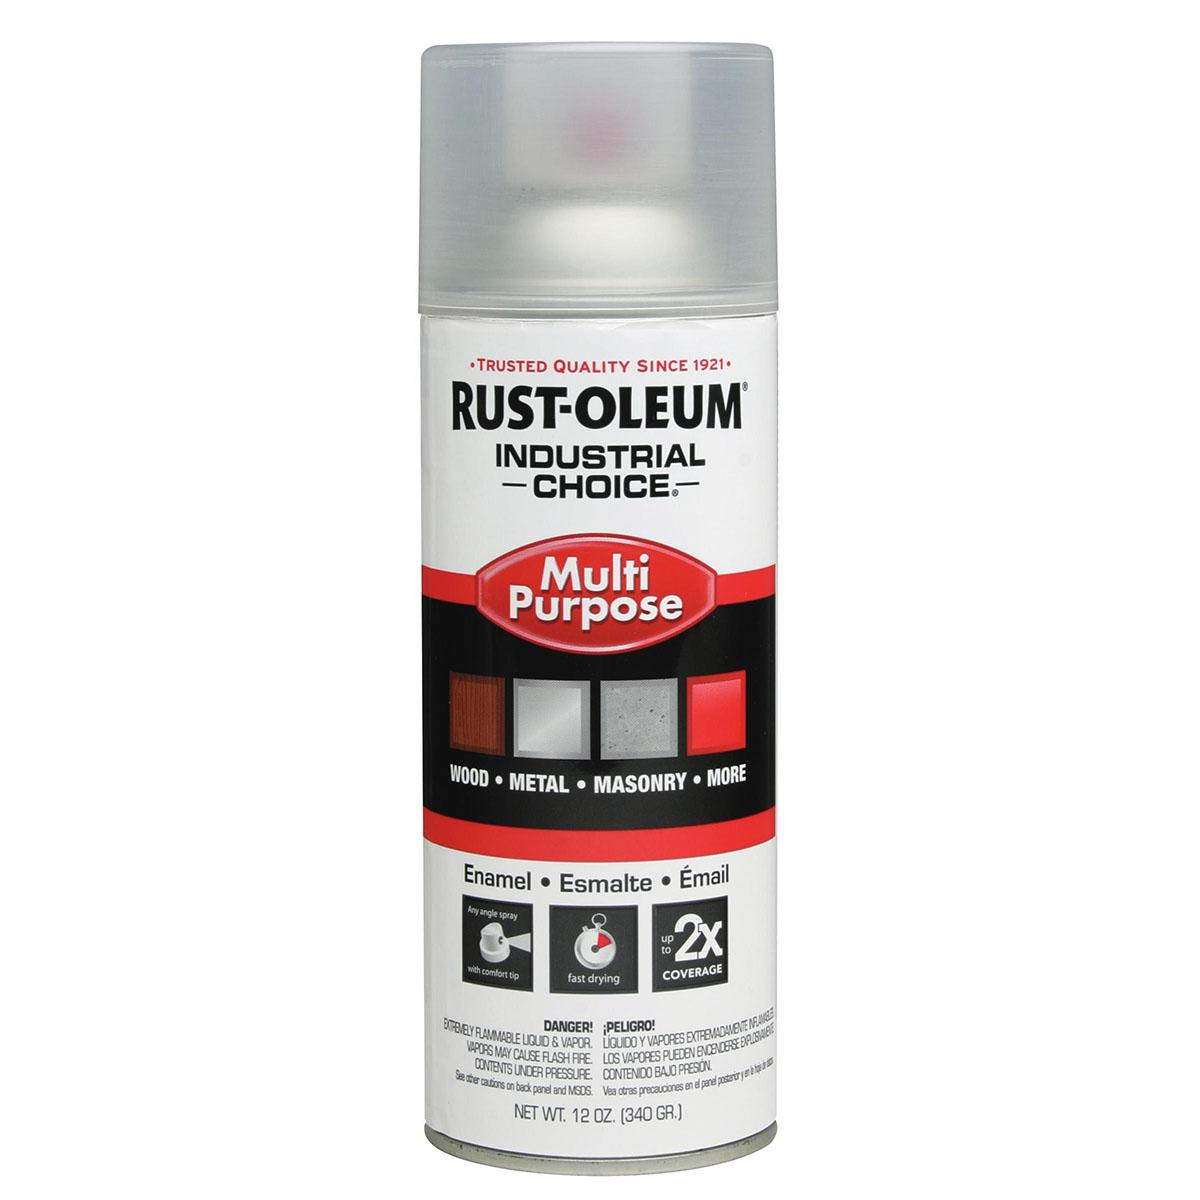 Rust-Oleum Spray Paint: Crystal Clear, Gloss, 1 hr Dry Time, 12 to 15 sq ft, 12 fl oz Container Size